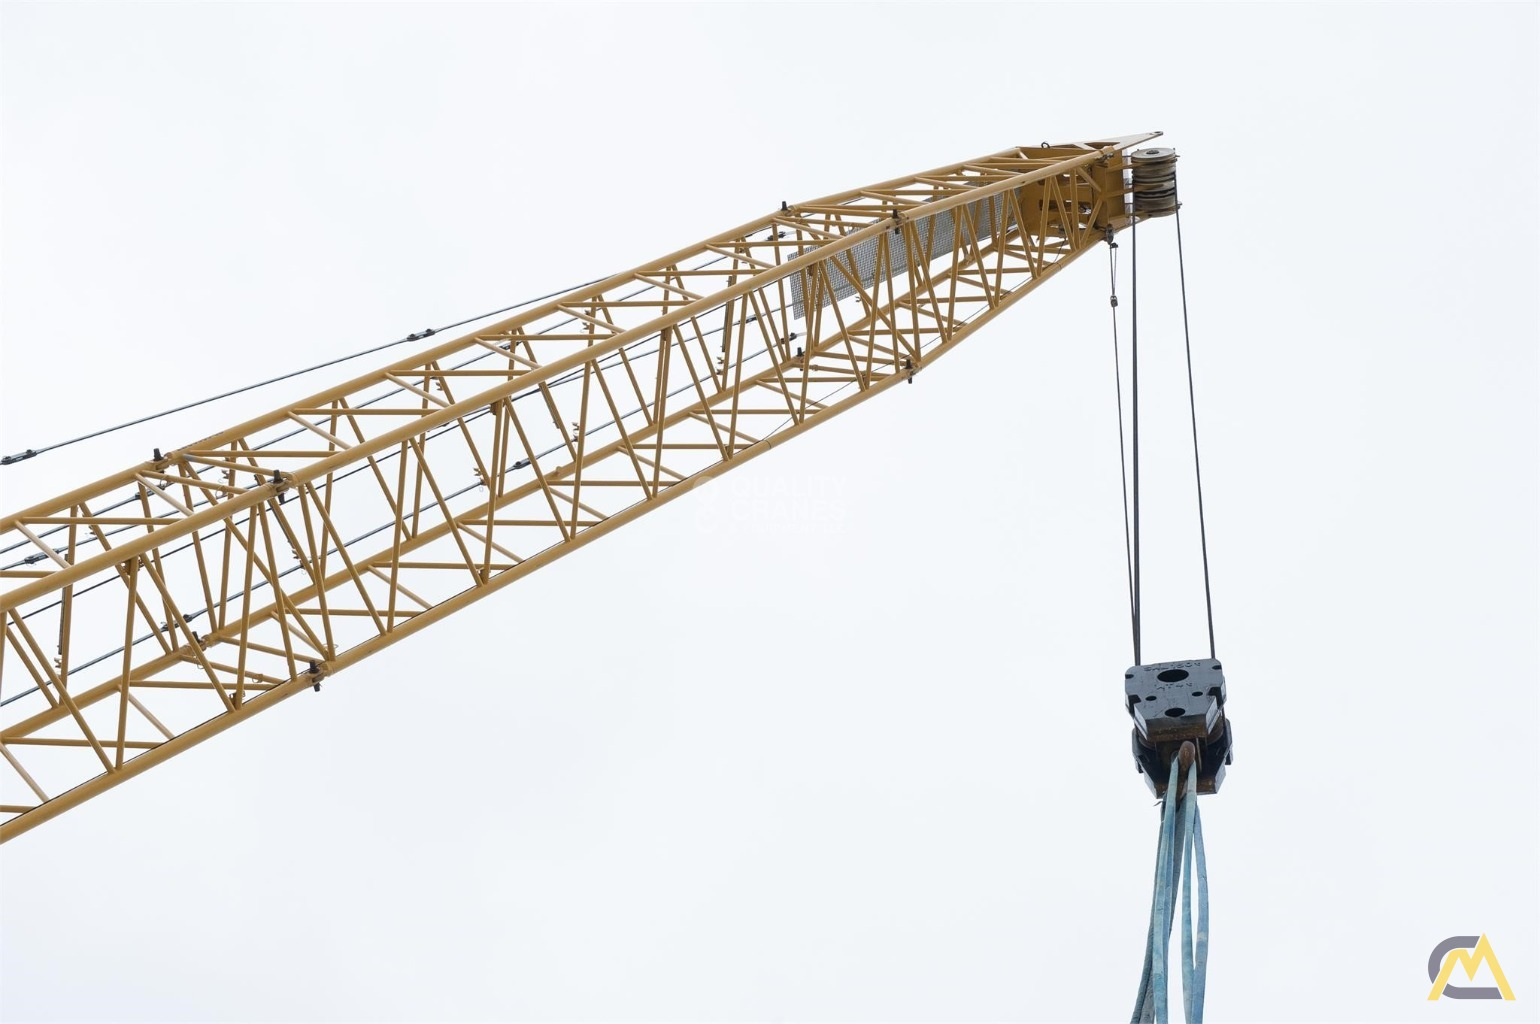 Liebherr LR 1280 300-Ton Lattice Boom Crawler Crane 40